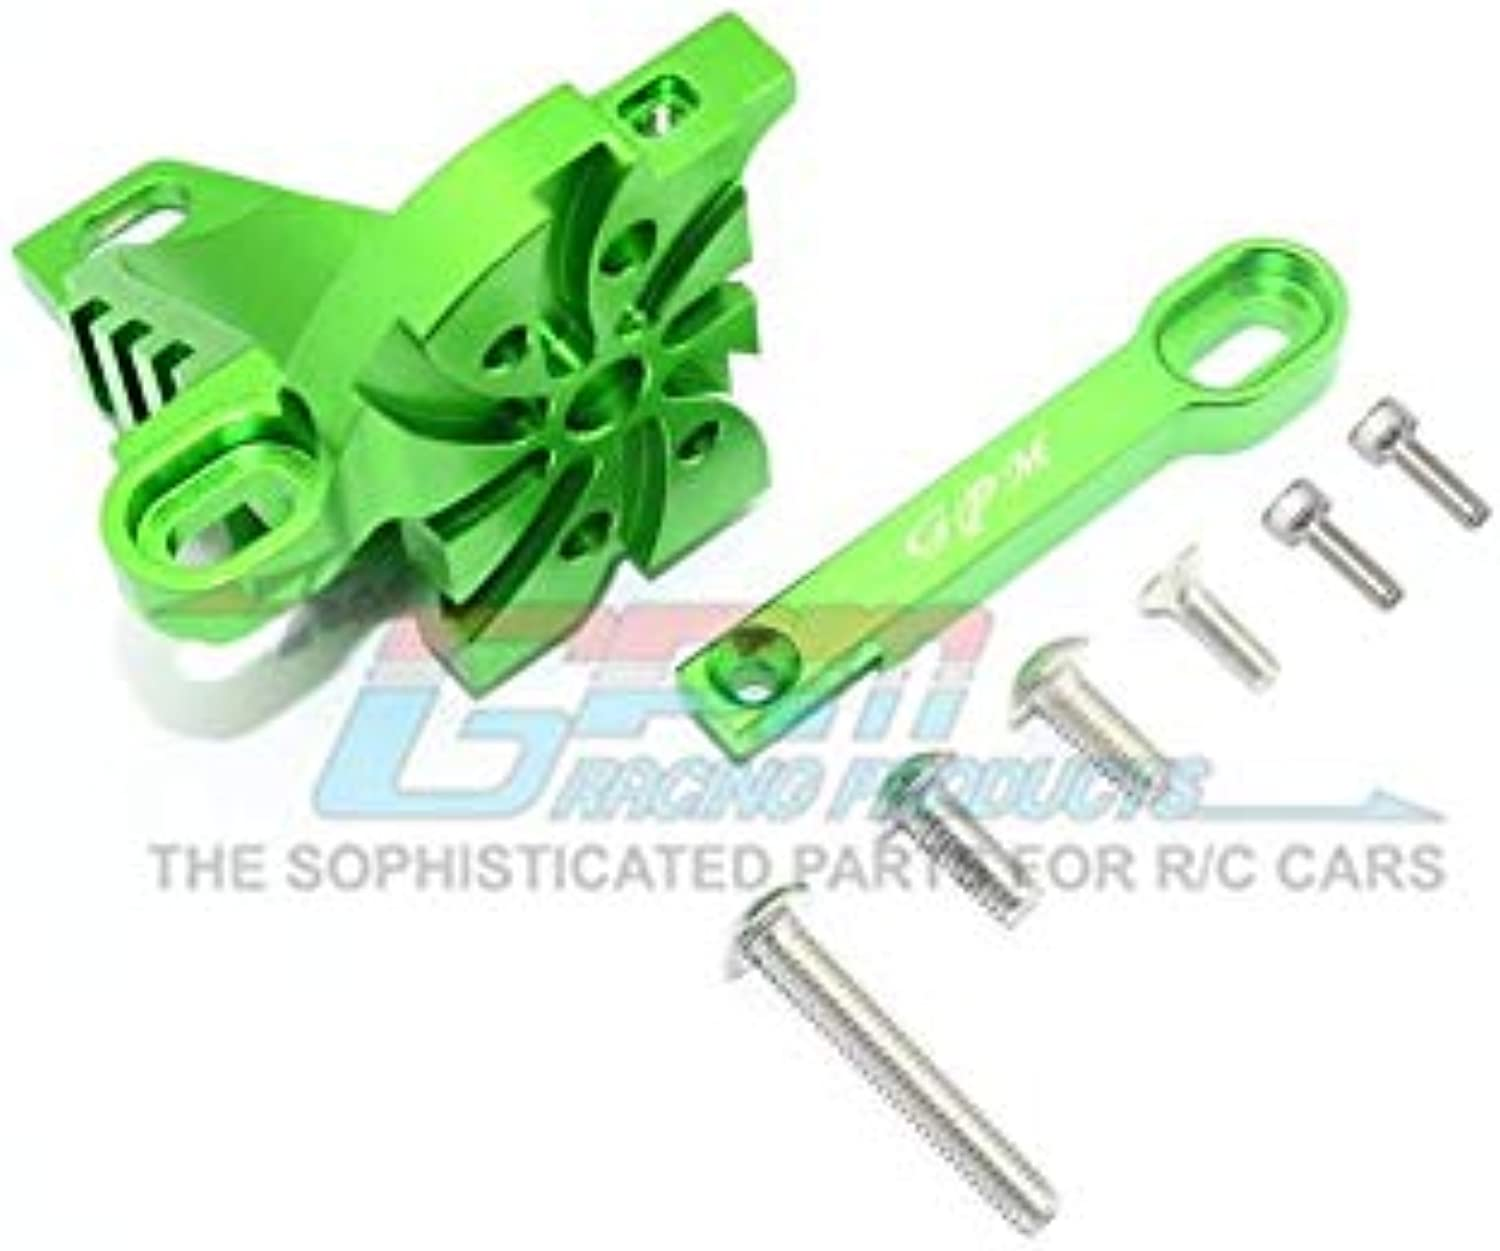 Traxxas Unlimited Desert Racer 4X4 ( 85076-4) Upgrade Parts Aluminum Motor Mount with Heat Sink Fins - 1 Set Green